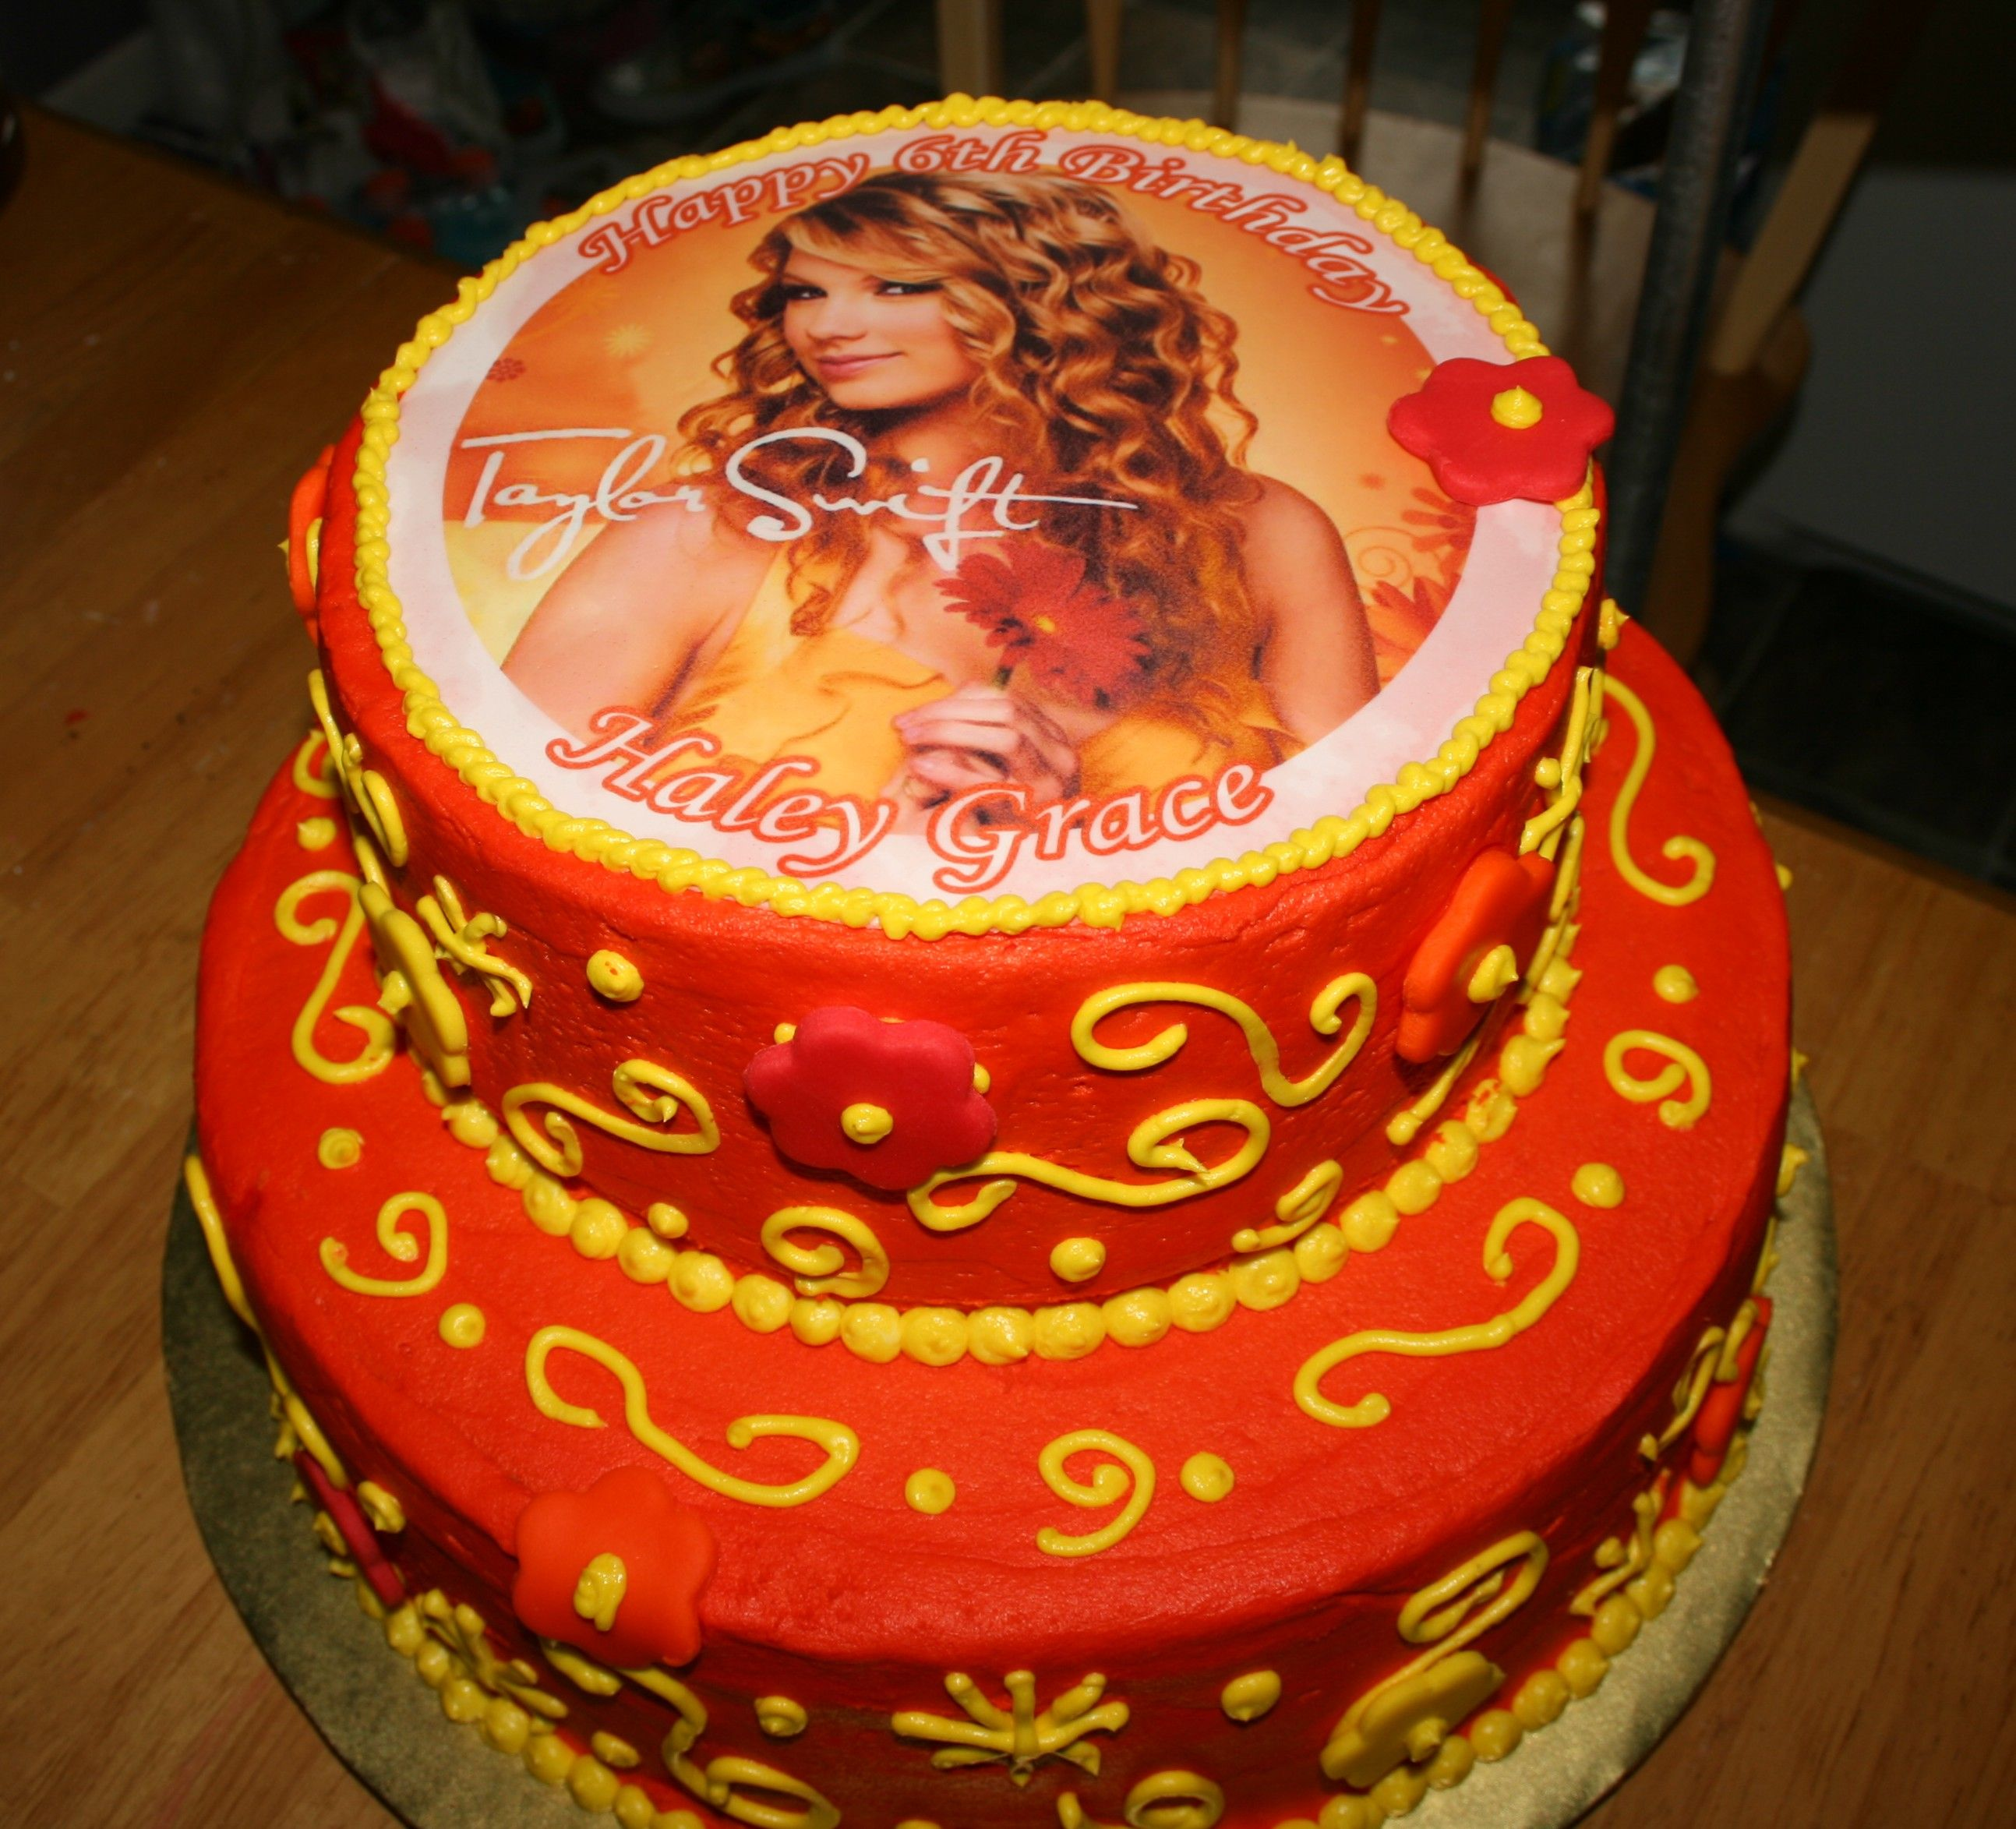 Taylor Swift Birthday Cake Featured Sponsors Birthday Cakes For